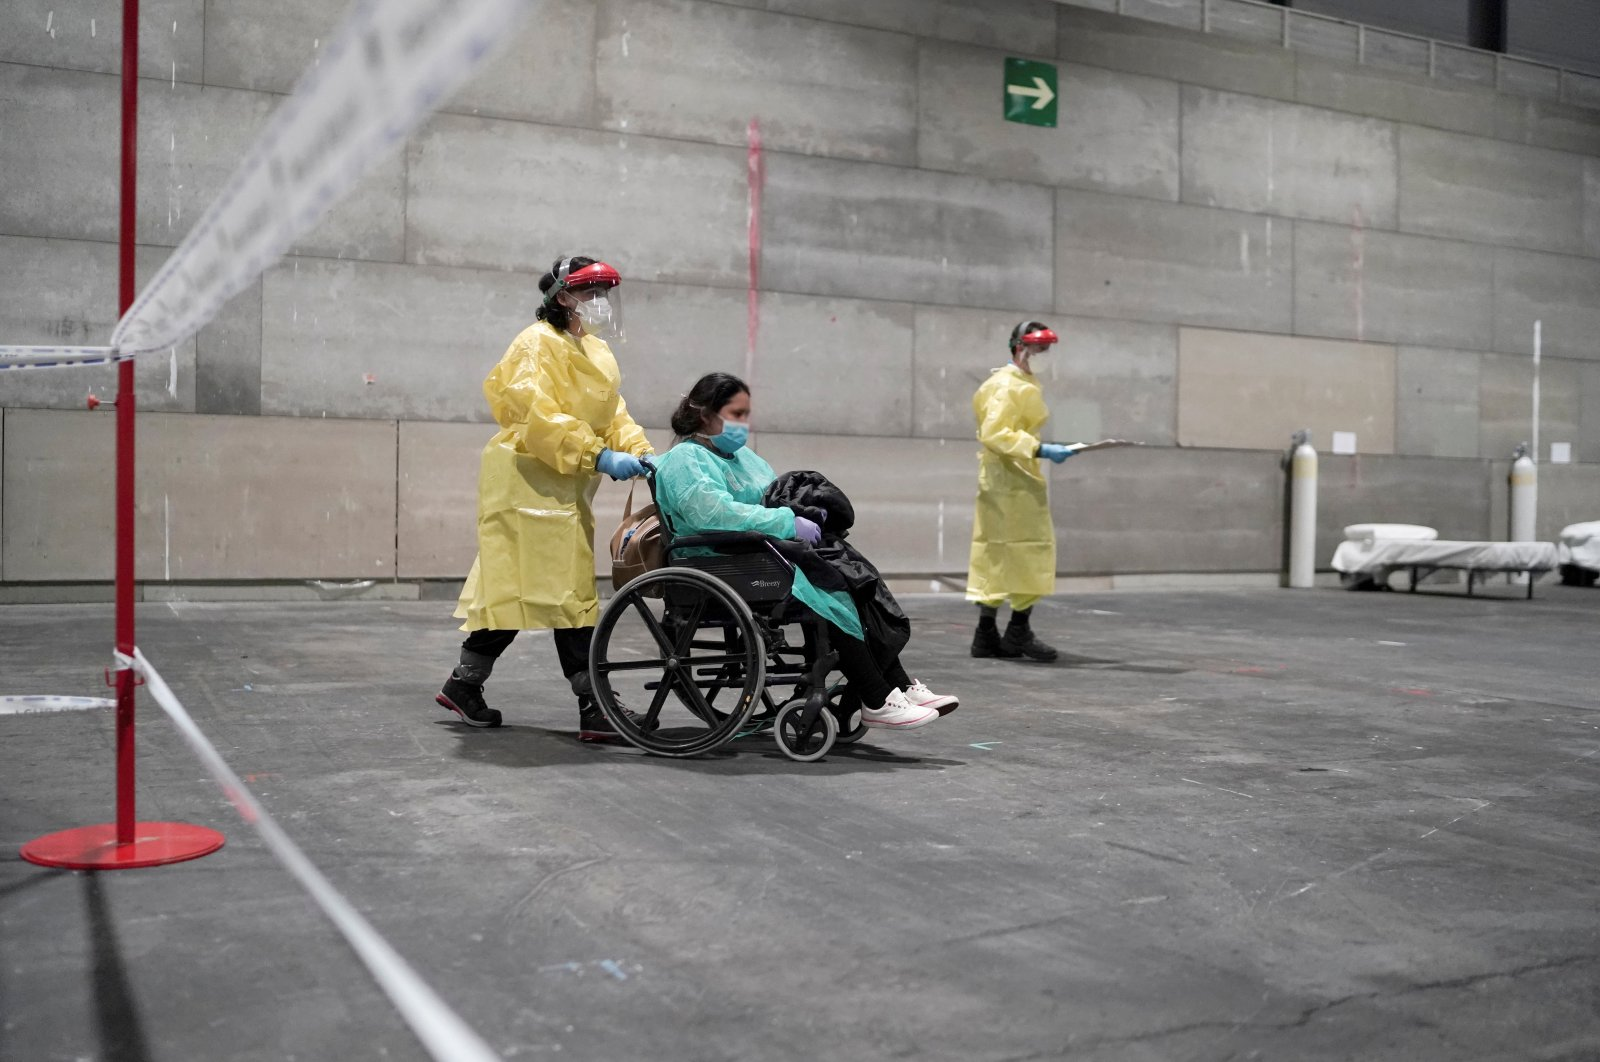 Coronavirus patients arrive at a military hospital set up at the IFEMA conference center in Madrid, Spain, March 21, 2020. Picture taken March 21, 2020. (Comunidad de Madrid/Handout via Reuters)